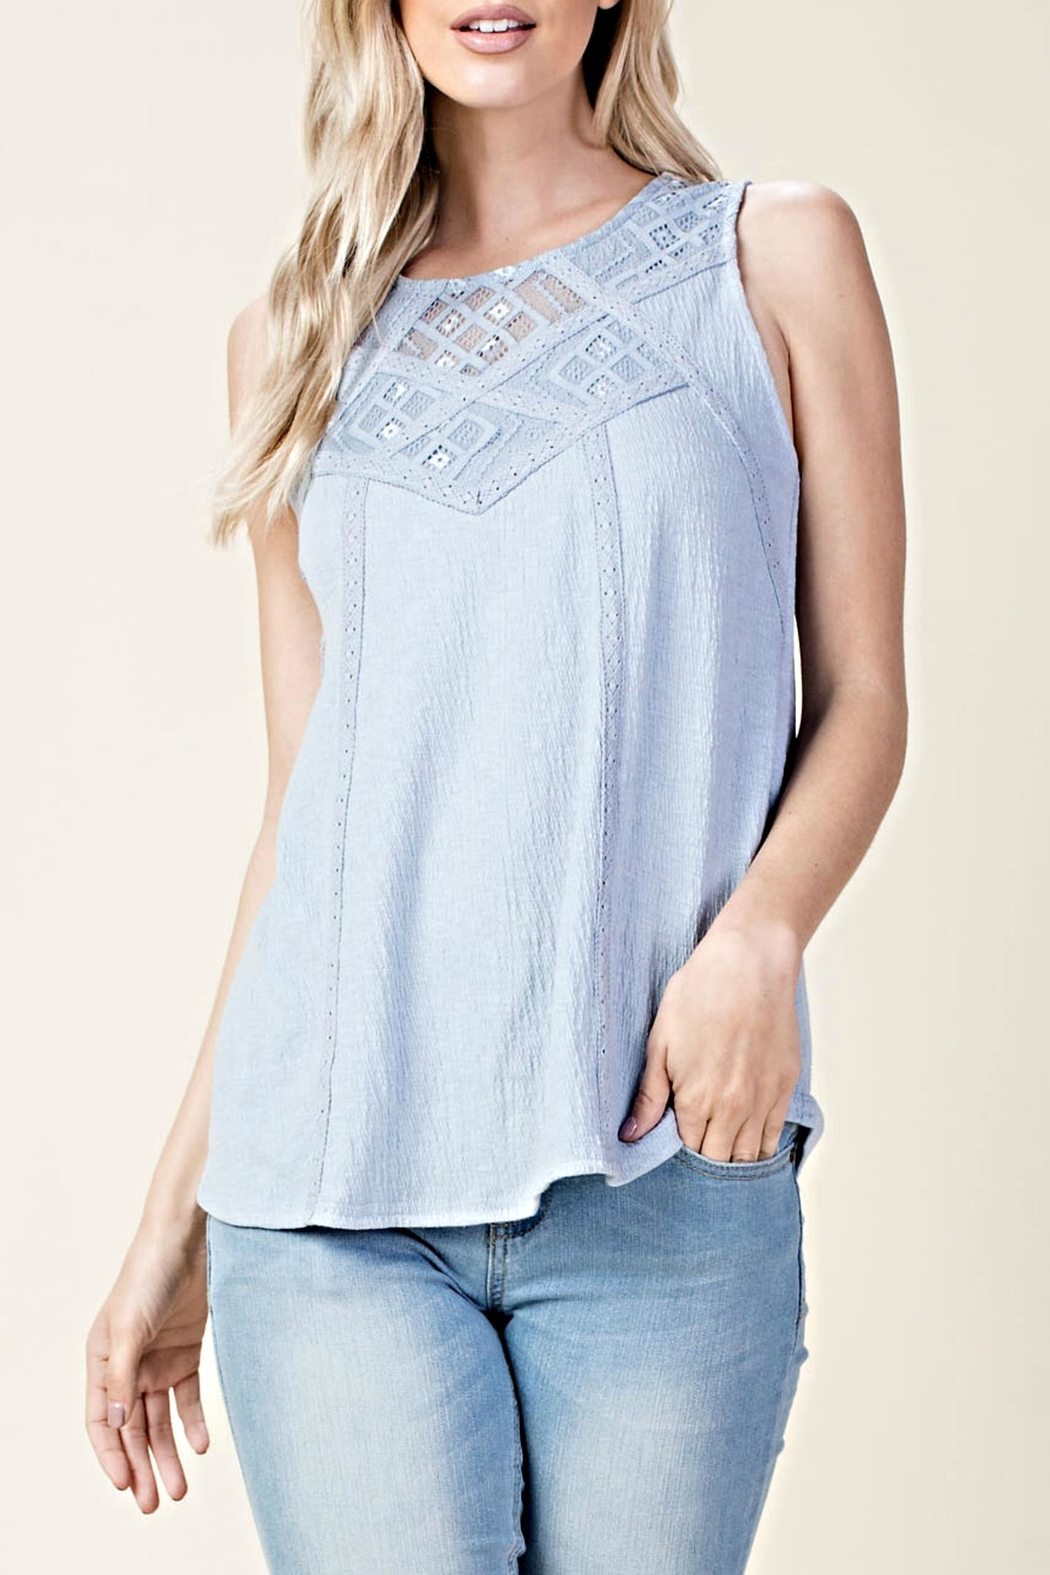 LLove USA Sleeveless Crisscross Top - Front Cropped Image